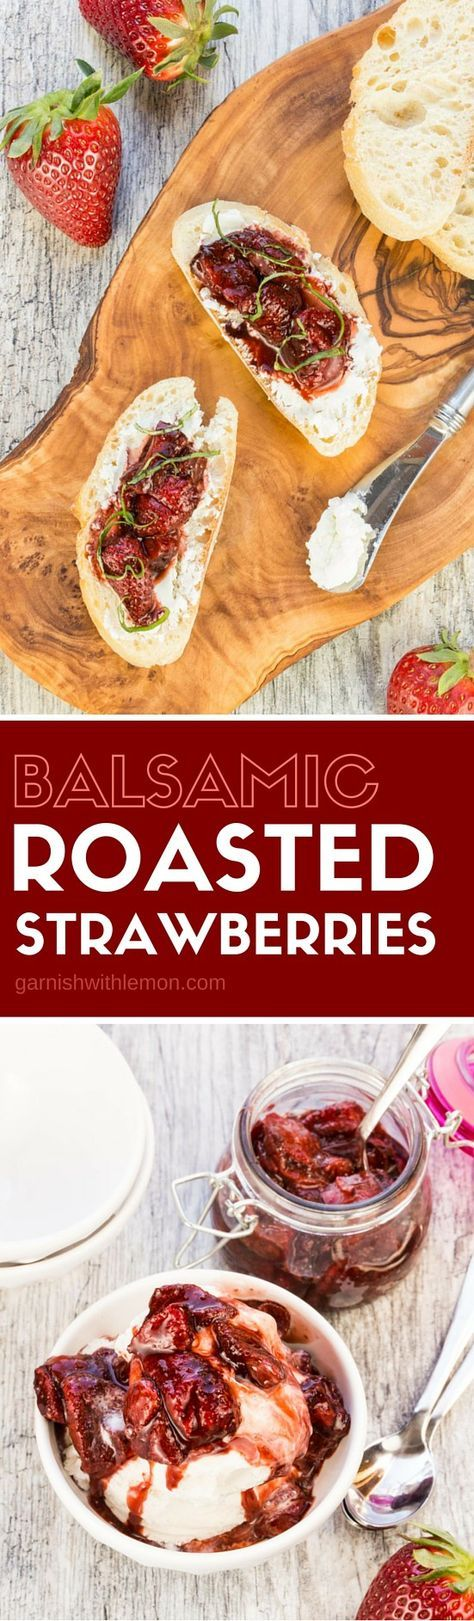 The sky is the limit for how you can use these easy Balsamic Roasted Strawberries - from crostini with goat cheese & basil to ice cream sundaes! Works equally well with fresh berries & those that are nearly past their prime.